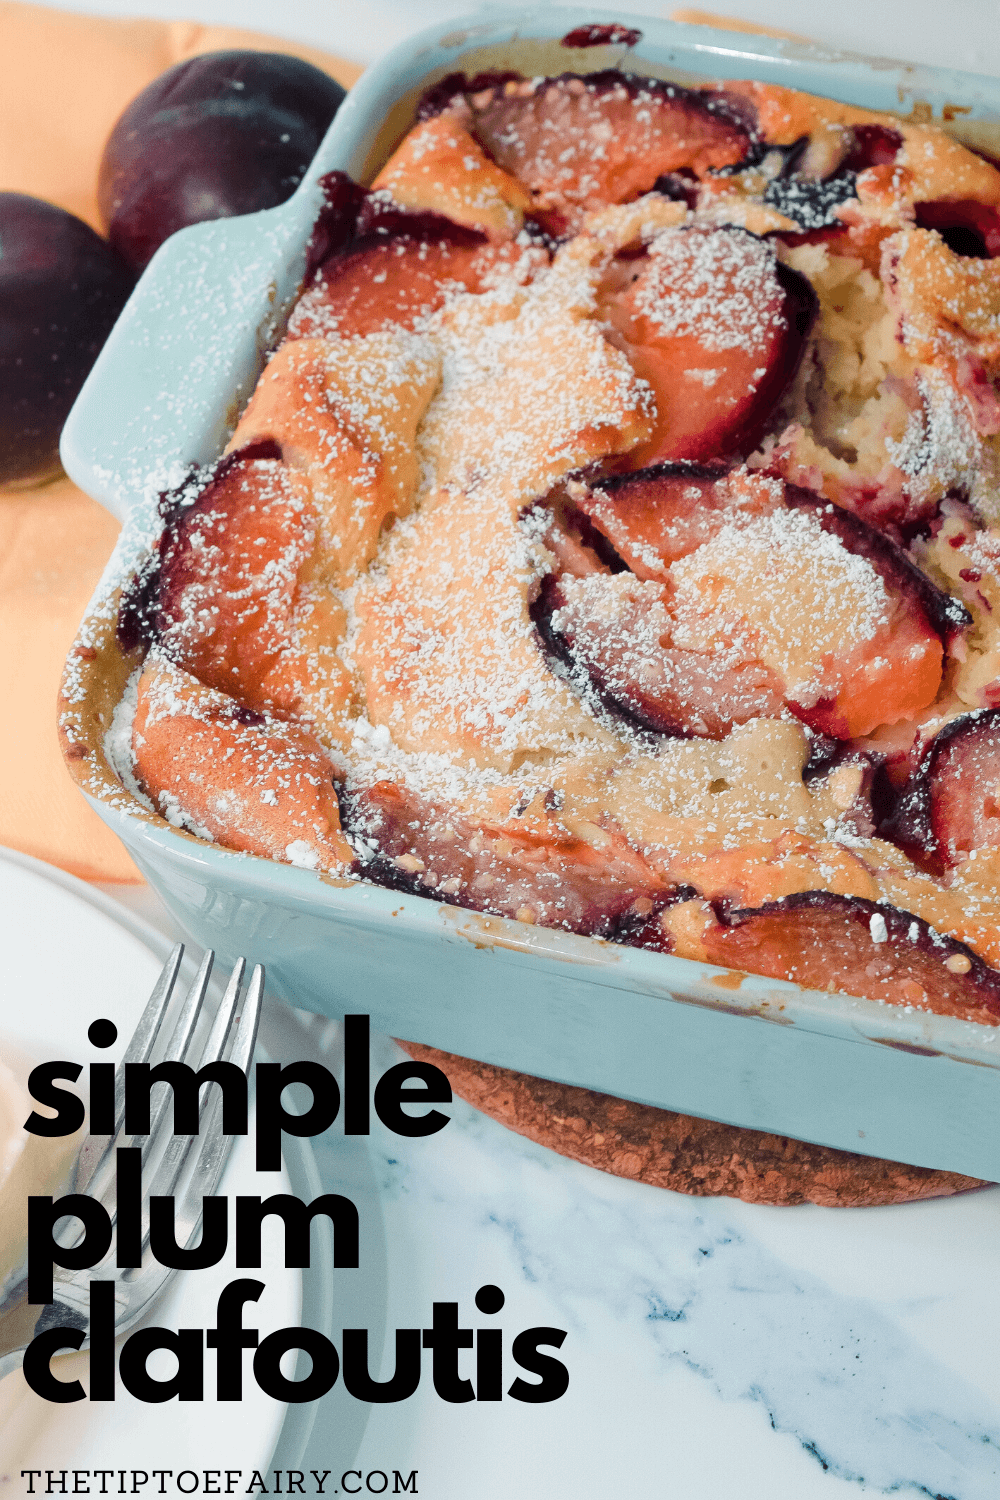 A Deliciously Easy French Dessert With A Funny Name Come See How To Make This Tasty Simple Plum Clafoutis You Can Plum Clafoutis Clafoutis Recipes Clafoutis